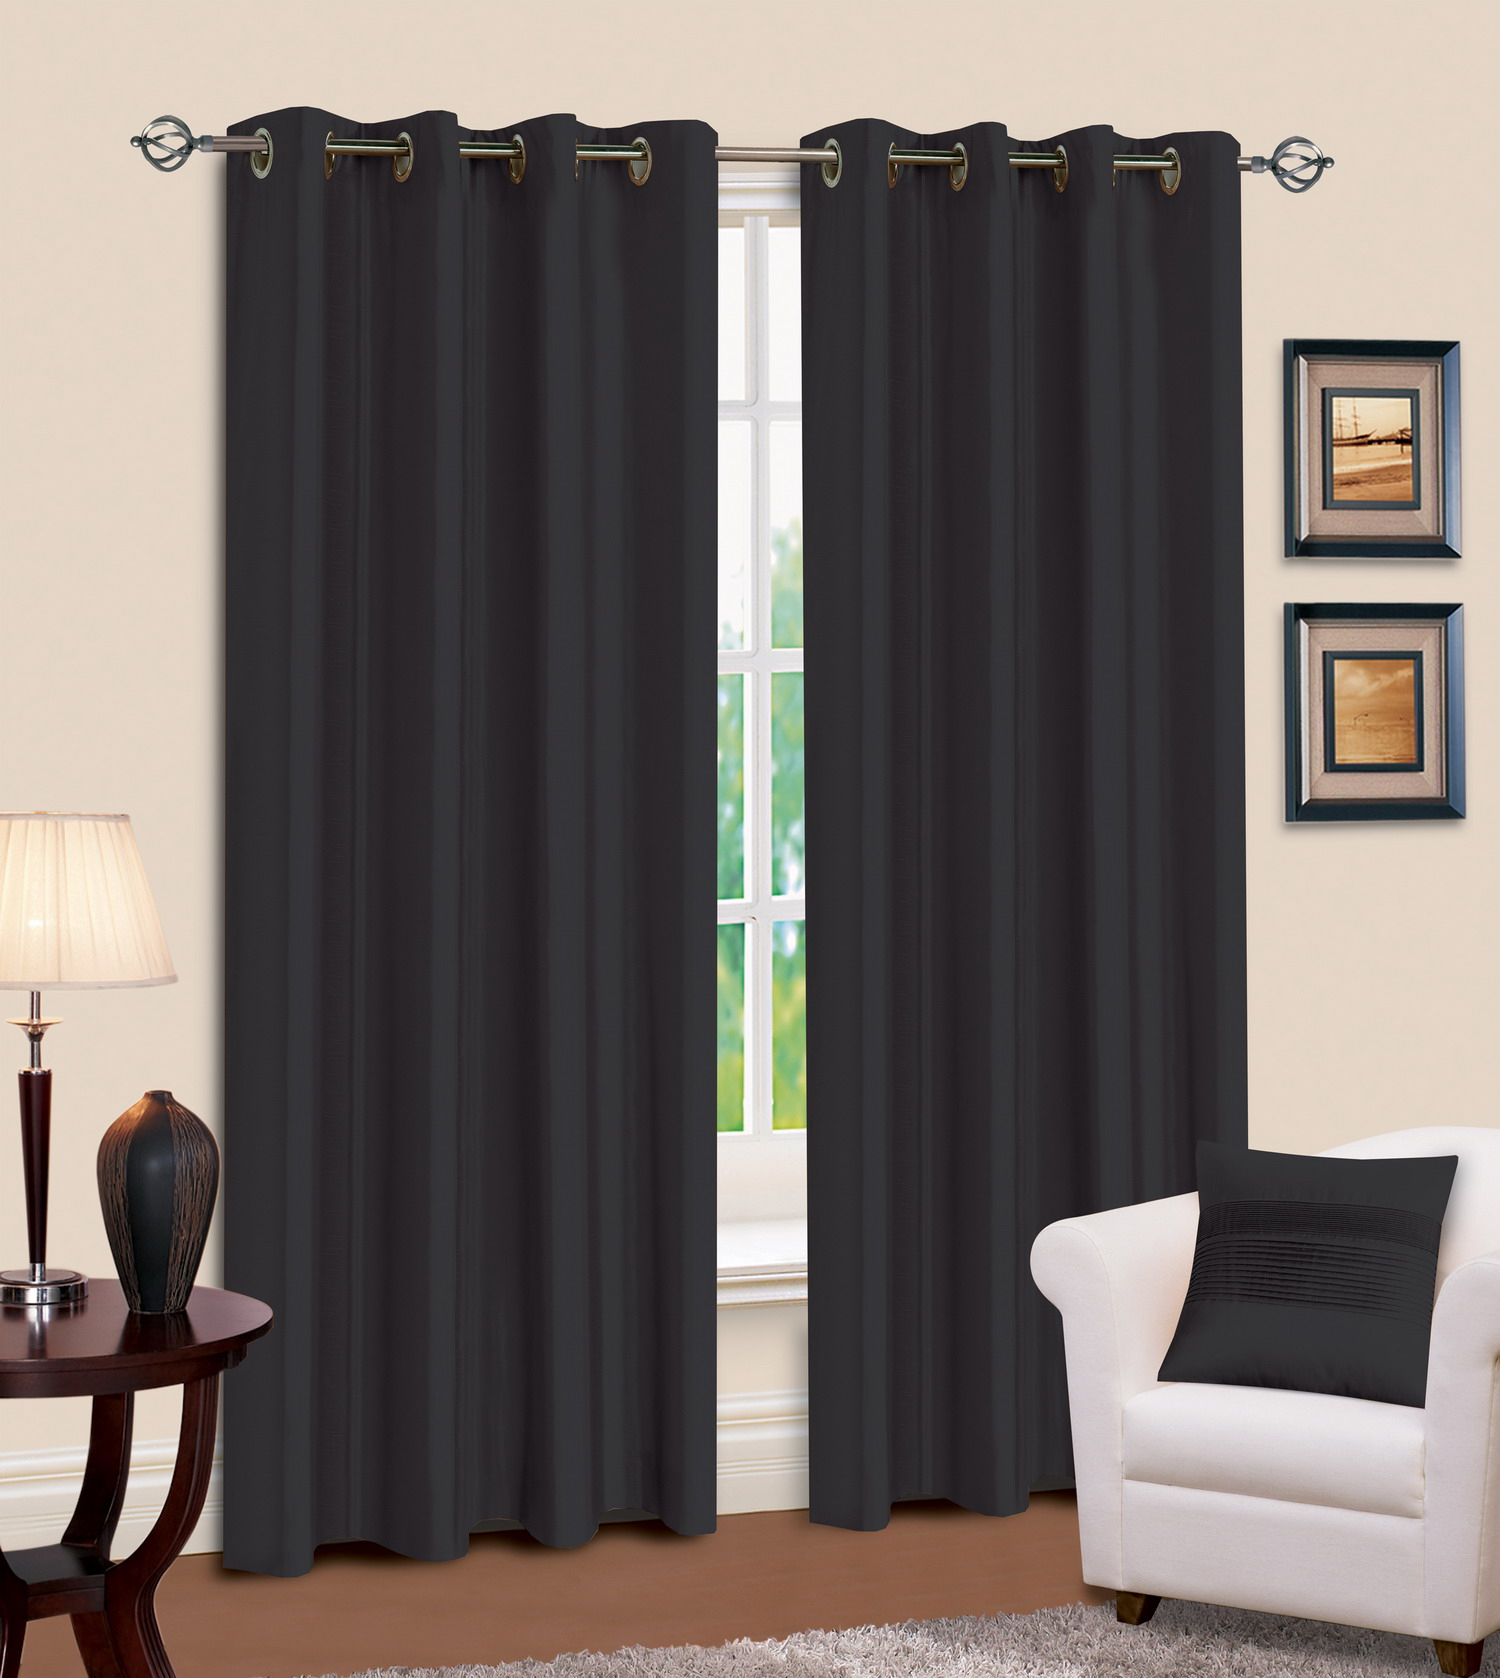 Black Faux Silk Pencil Pleat Curtains Throughout Overseas Faux Silk Blackout Curtain Panel Pairs (View 19 of 20)